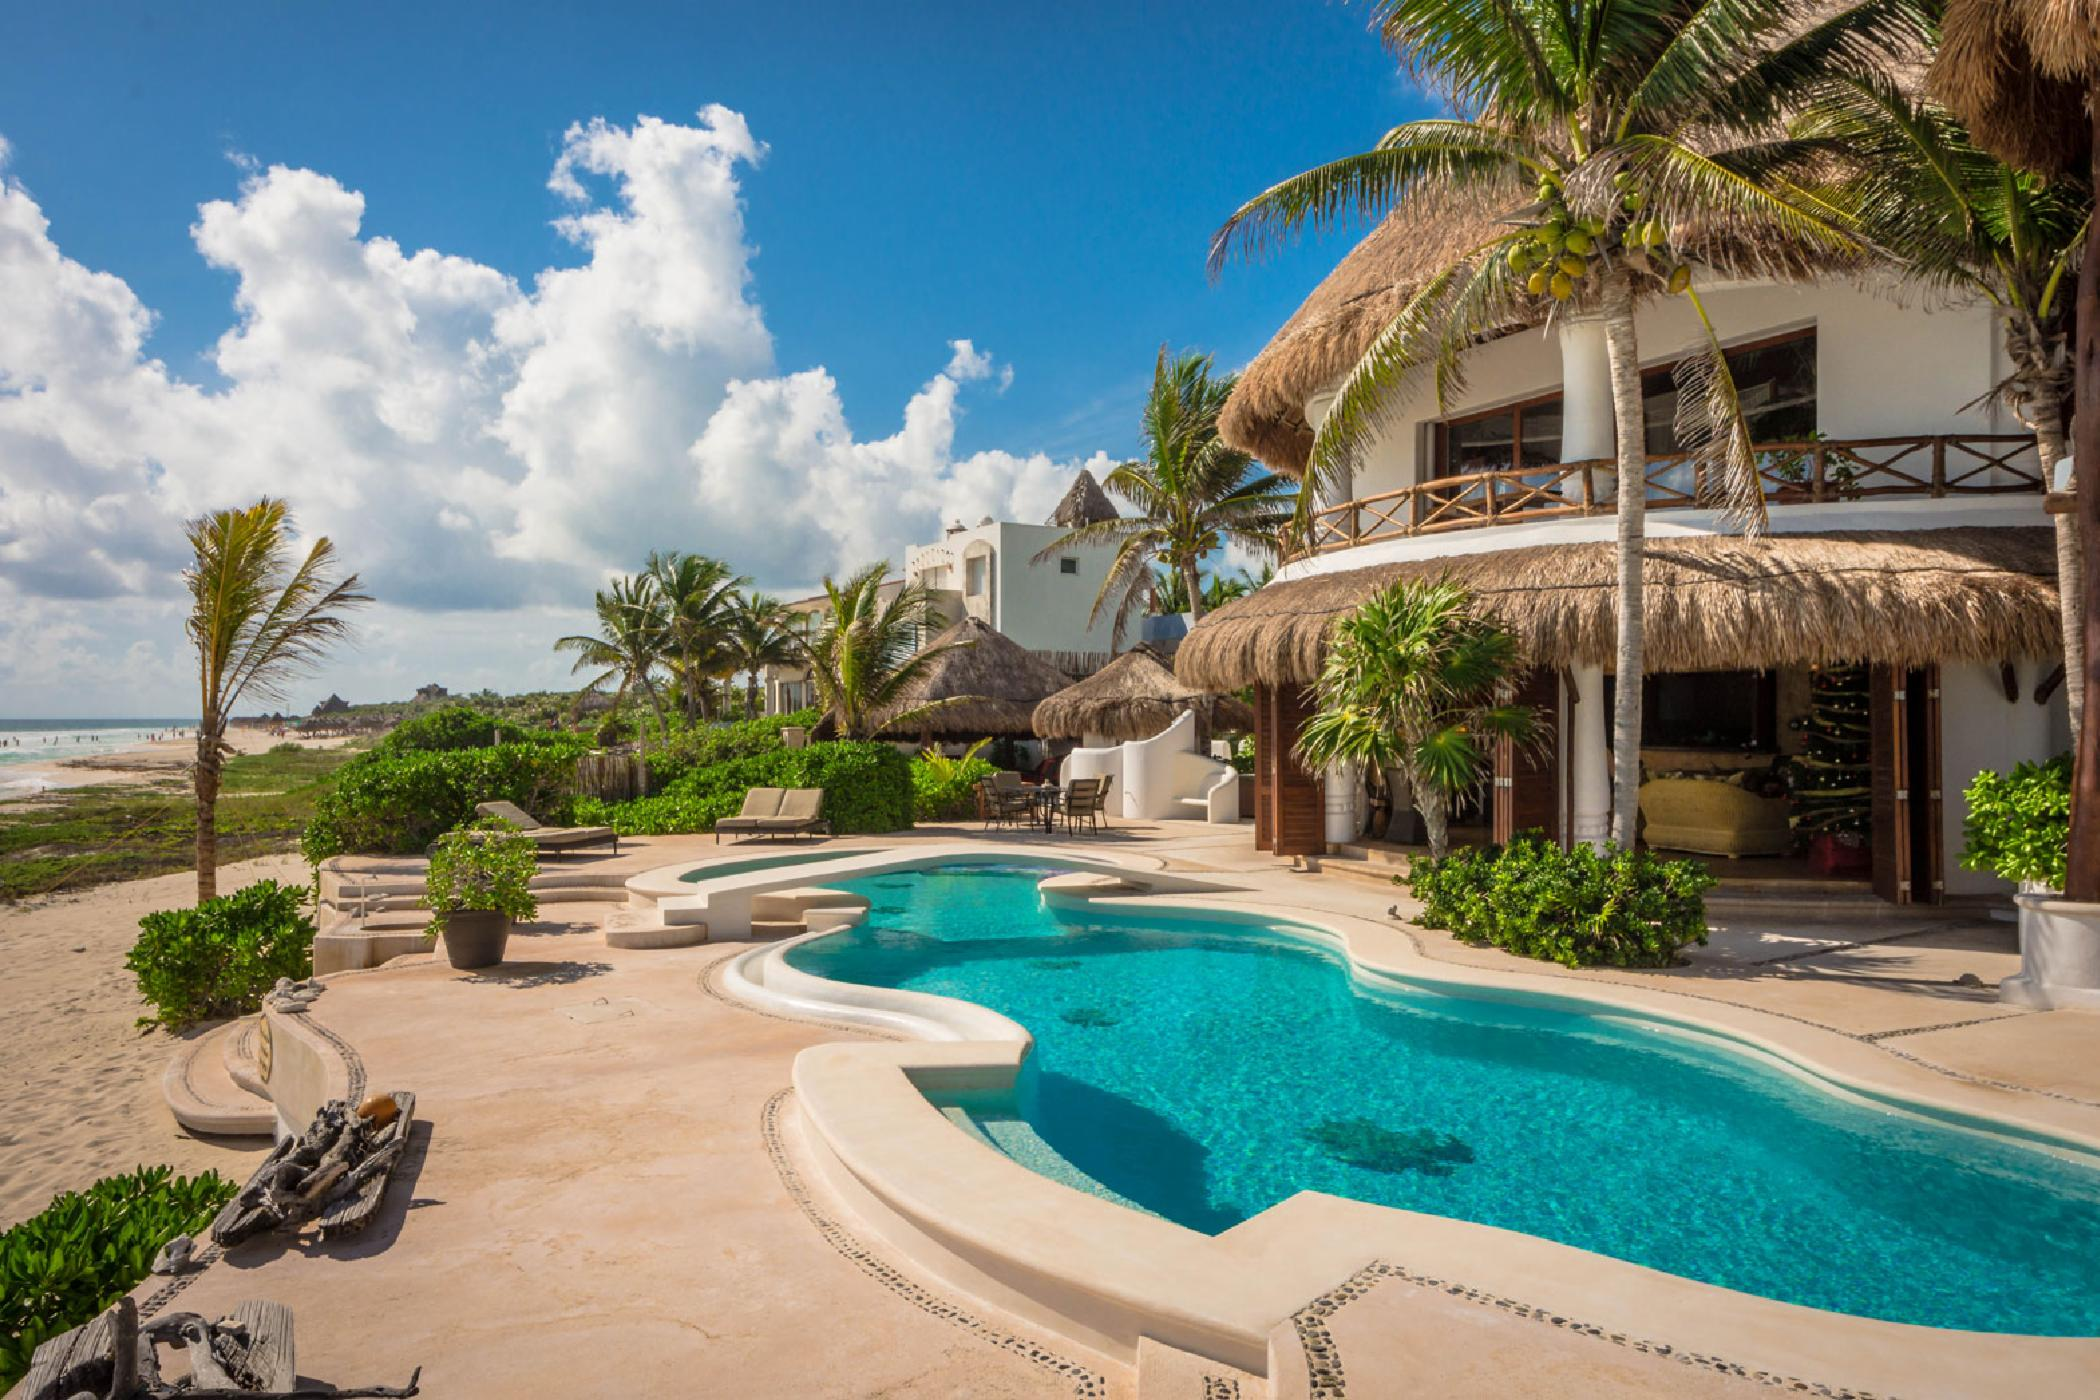 Exquisite Puerto Morelos 5 BDR luxury estate; private beach, amazing pool, secluded oasis